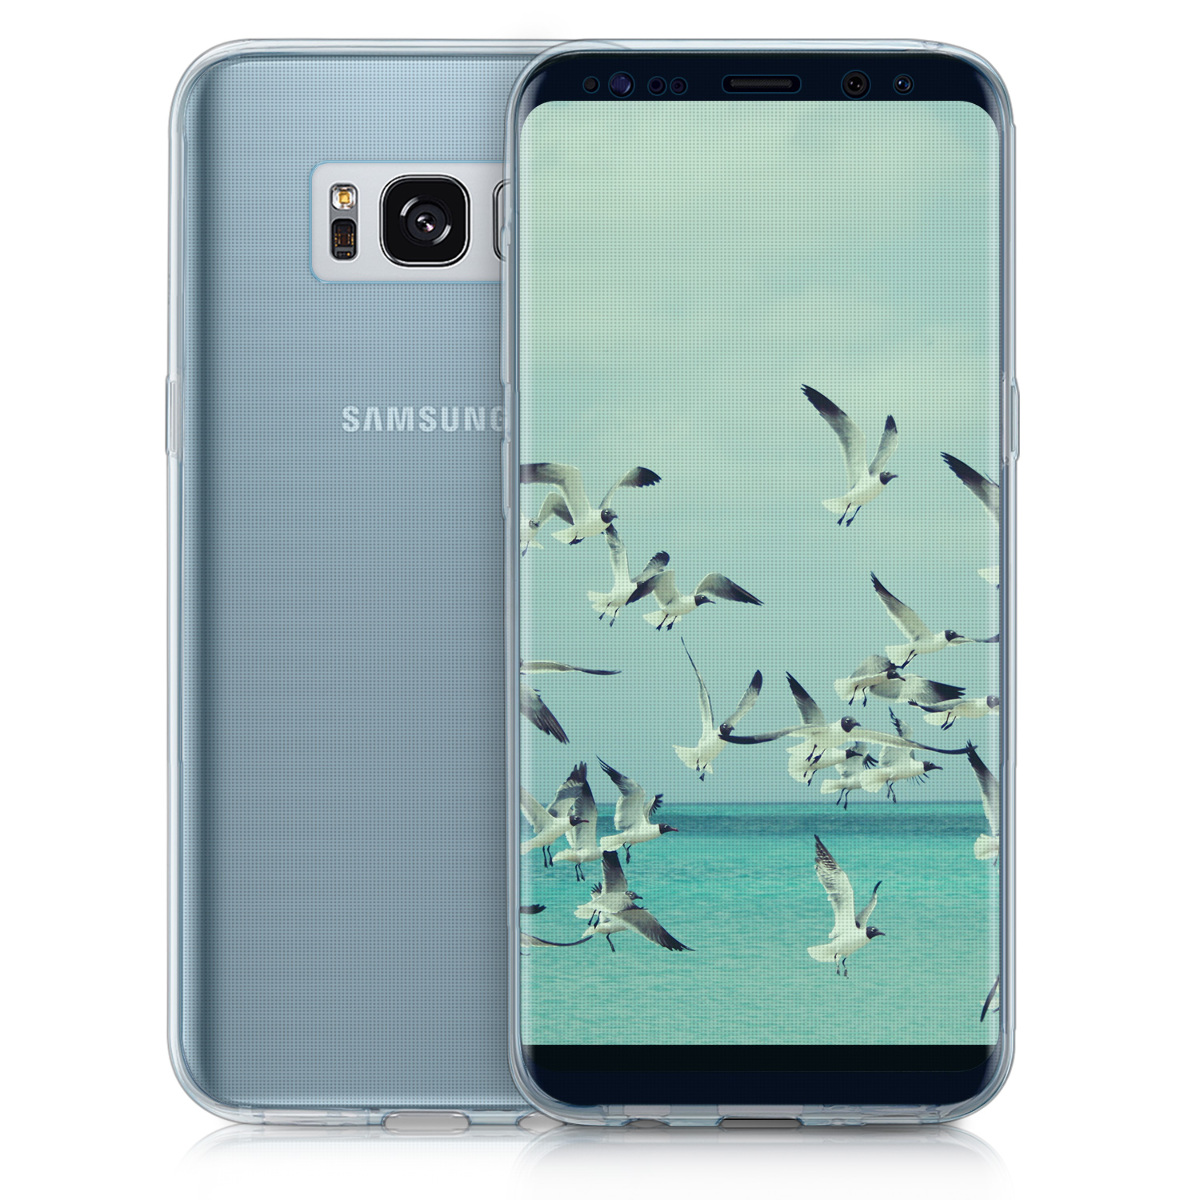 ETUI-FULL-BODY-POUR-SAMSUNG-GALAXY-S8-COVER-PROTECTEUR-TPU-SILICONE-COMPLET